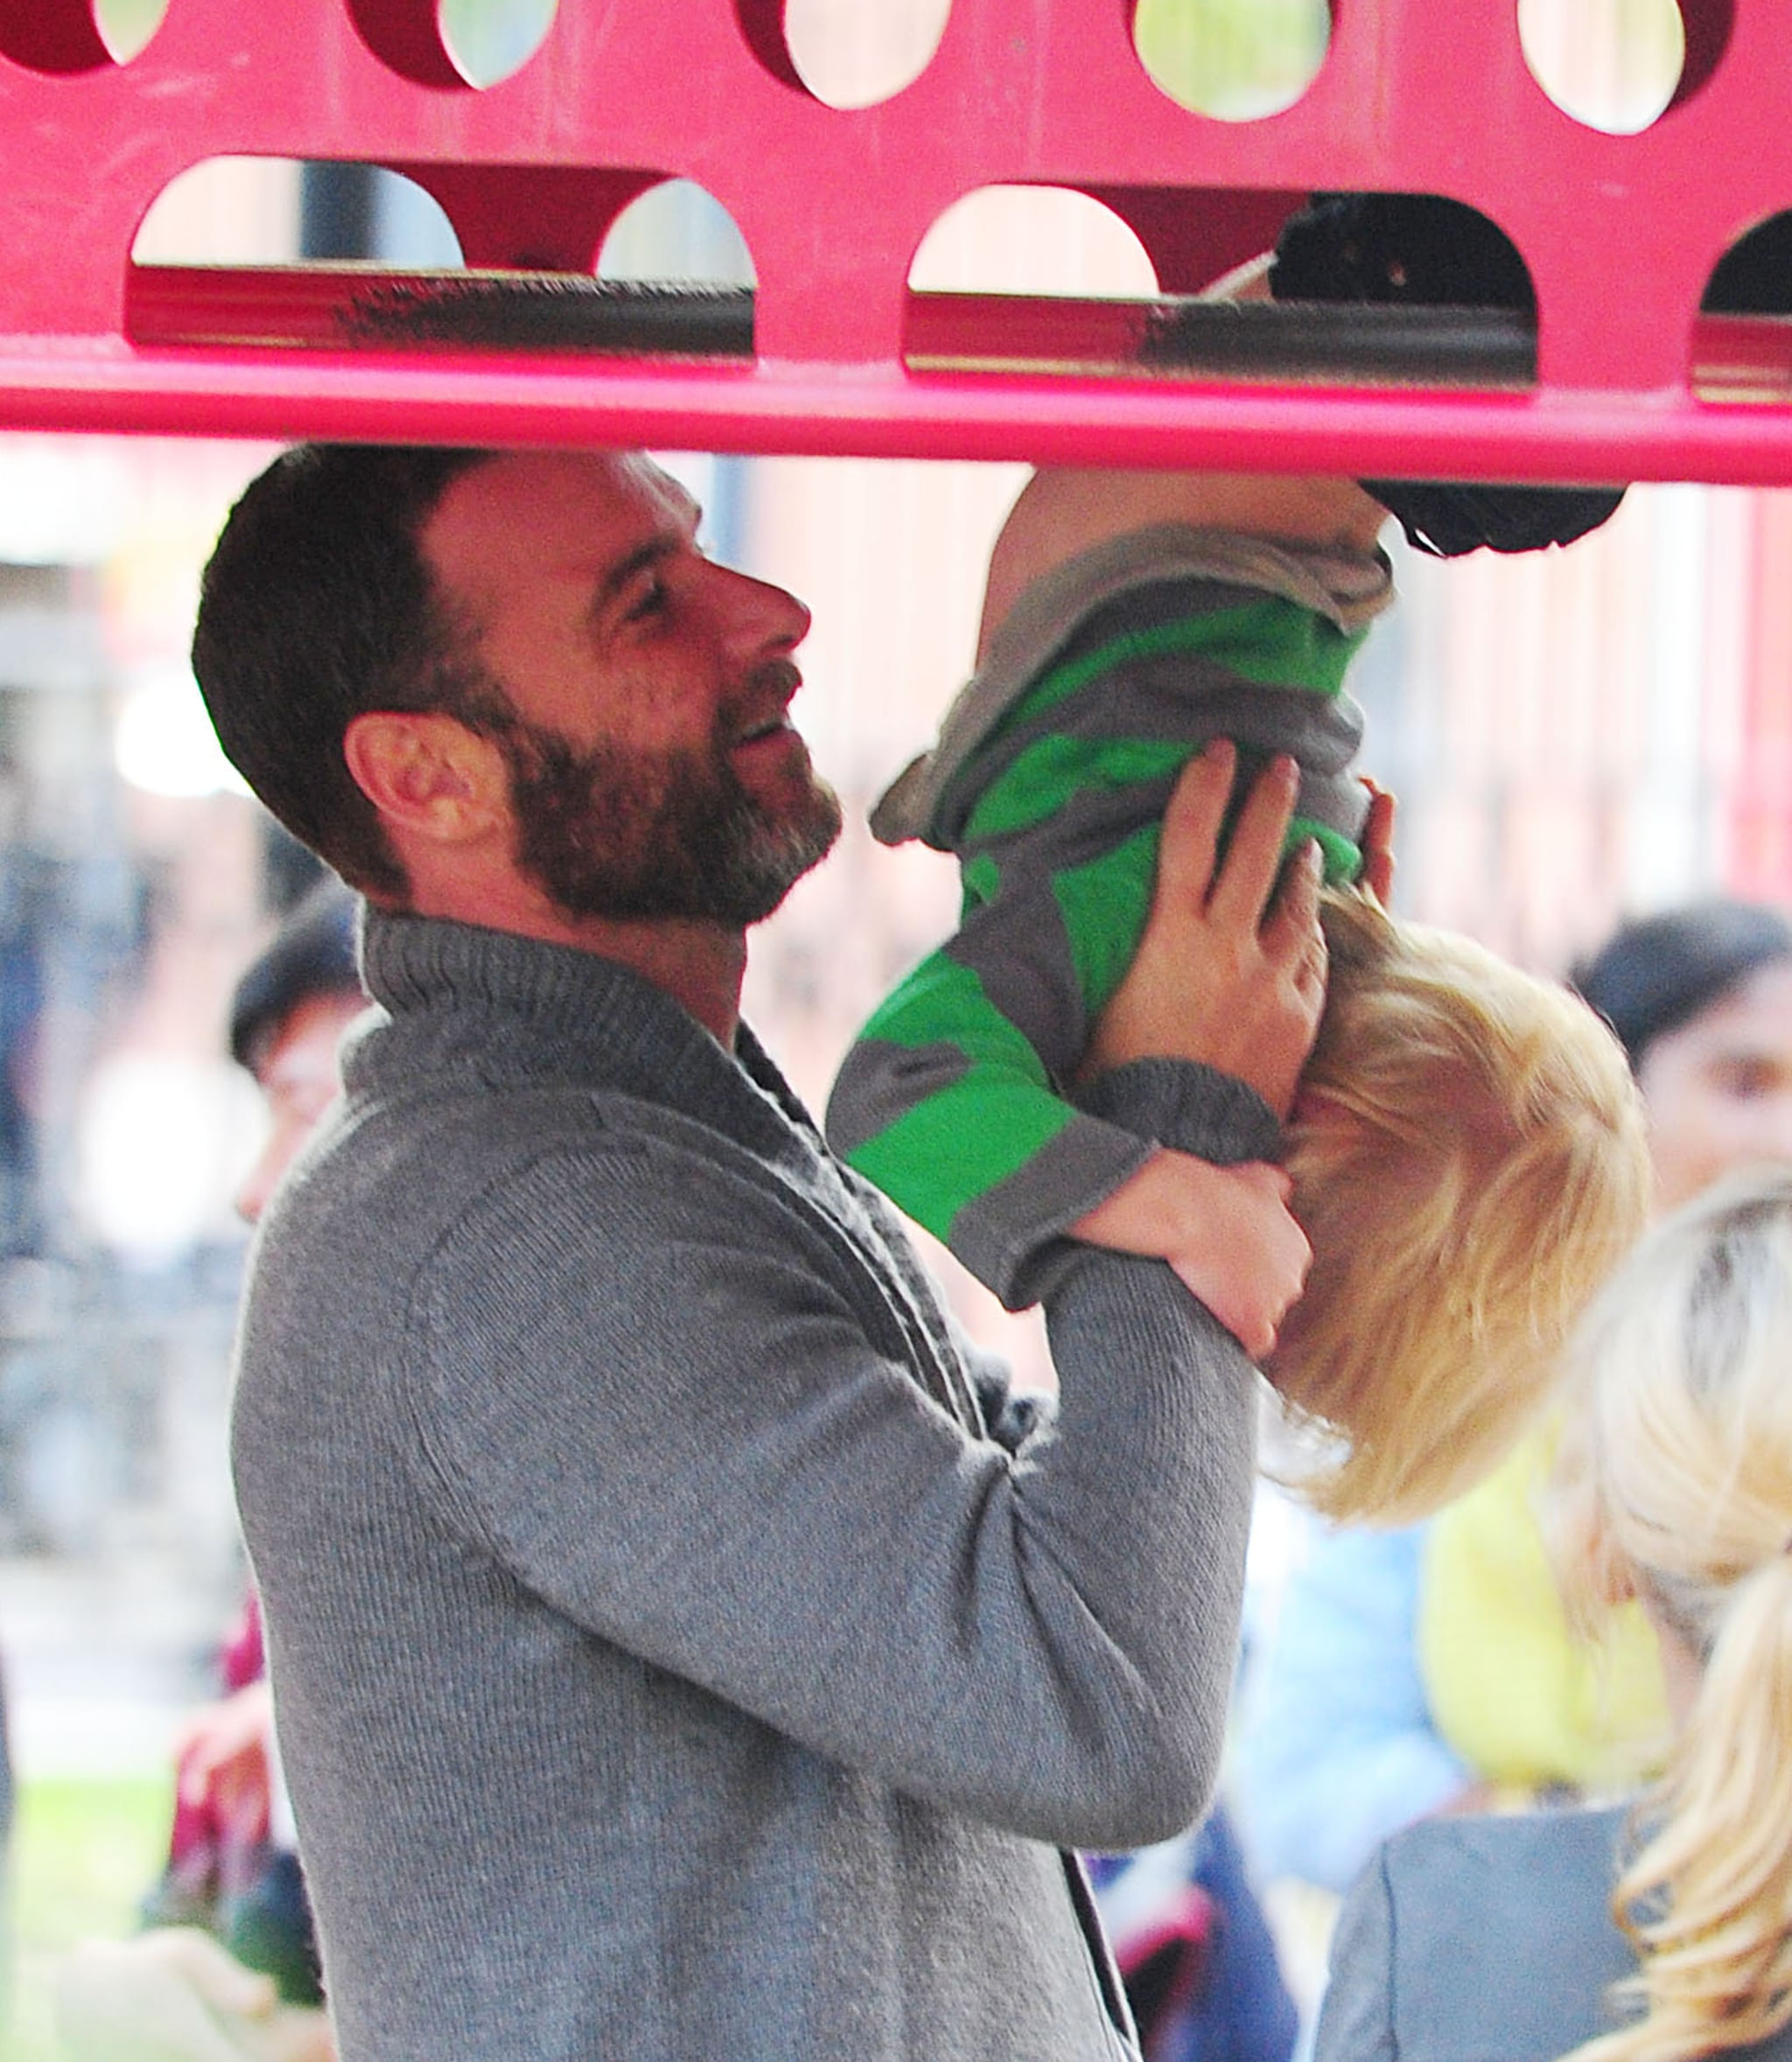 Liev Schreiber watched over his son Kai at the playground in NYC.